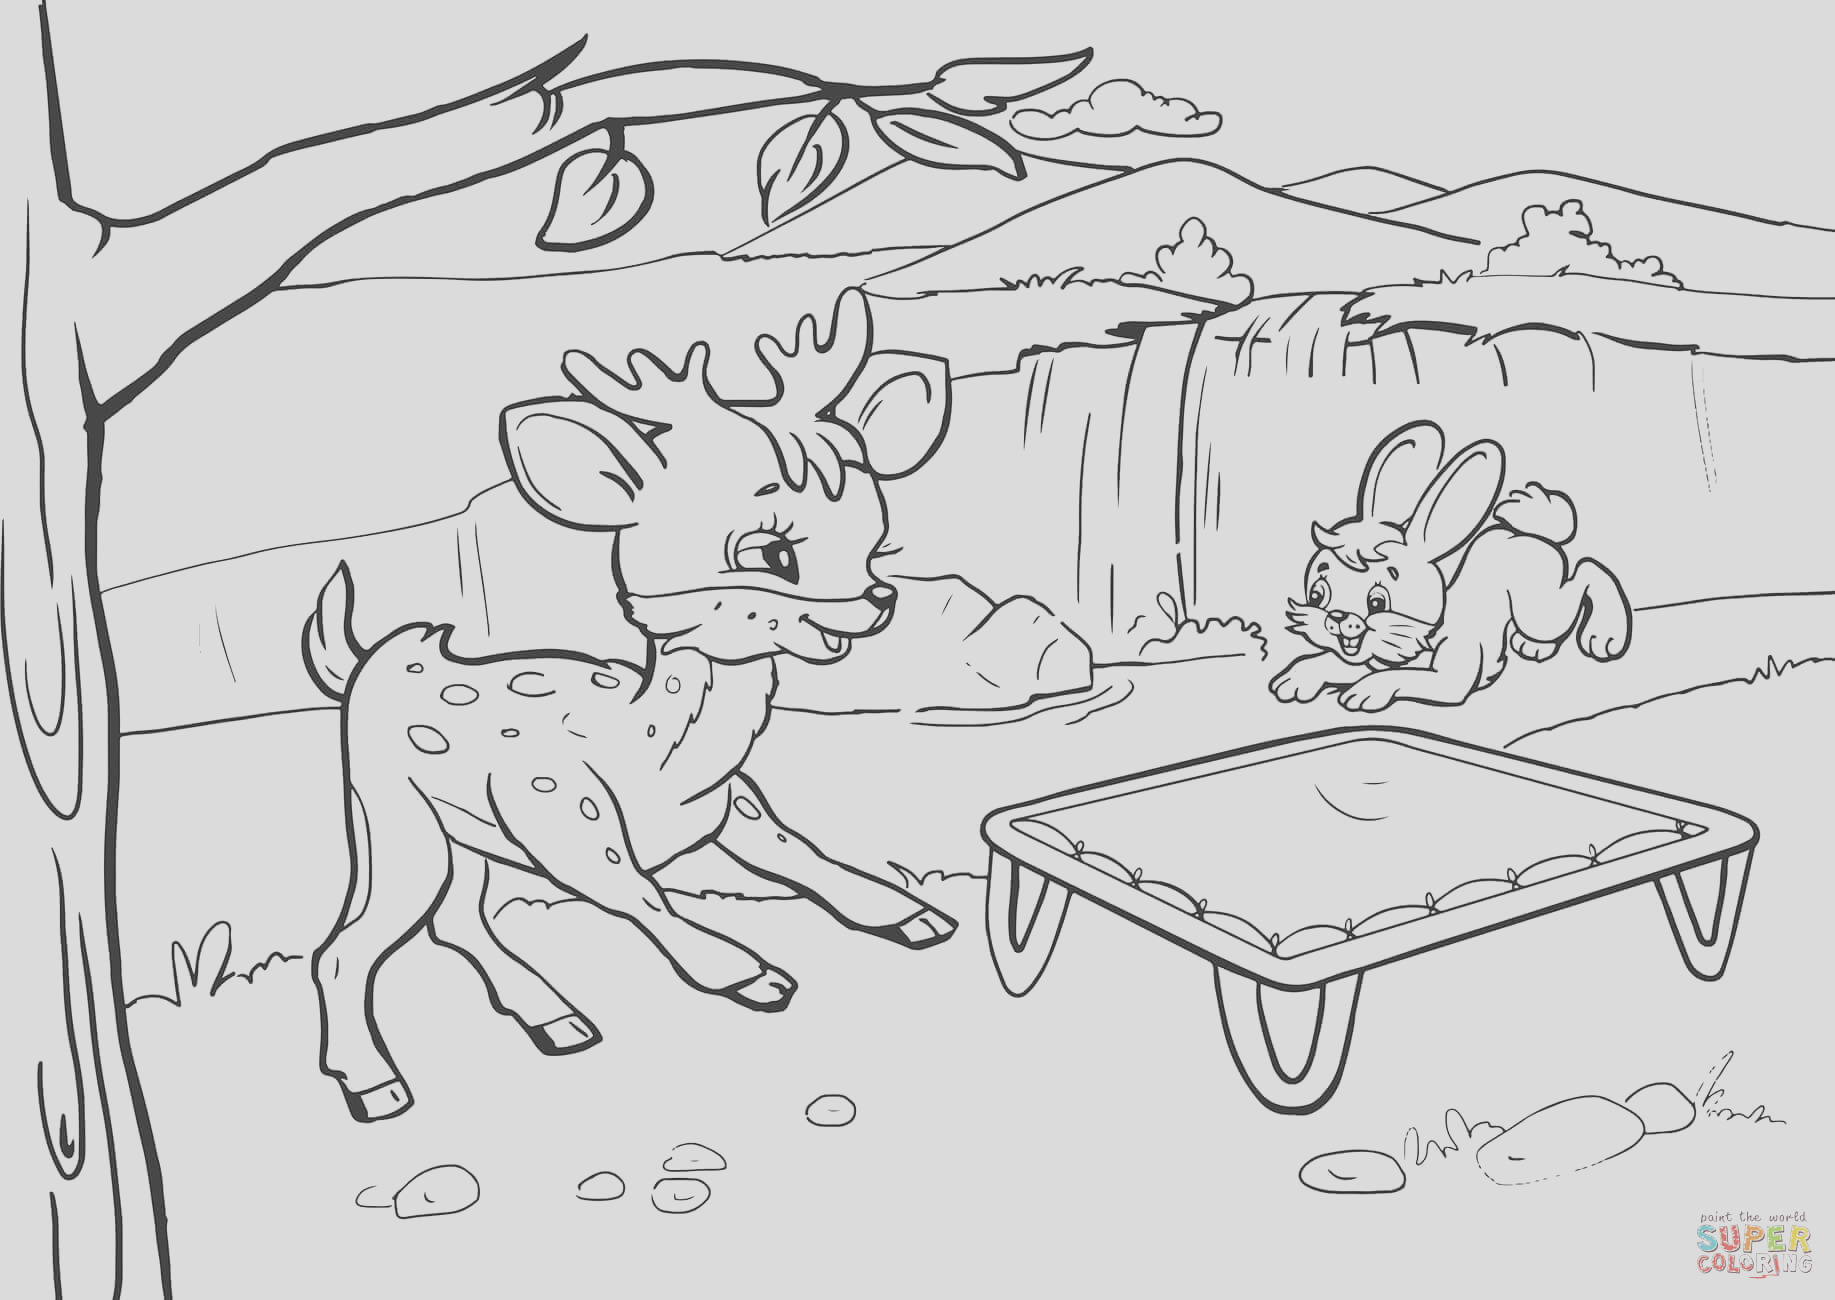 rabbit and deer are bouncing on a trampoline